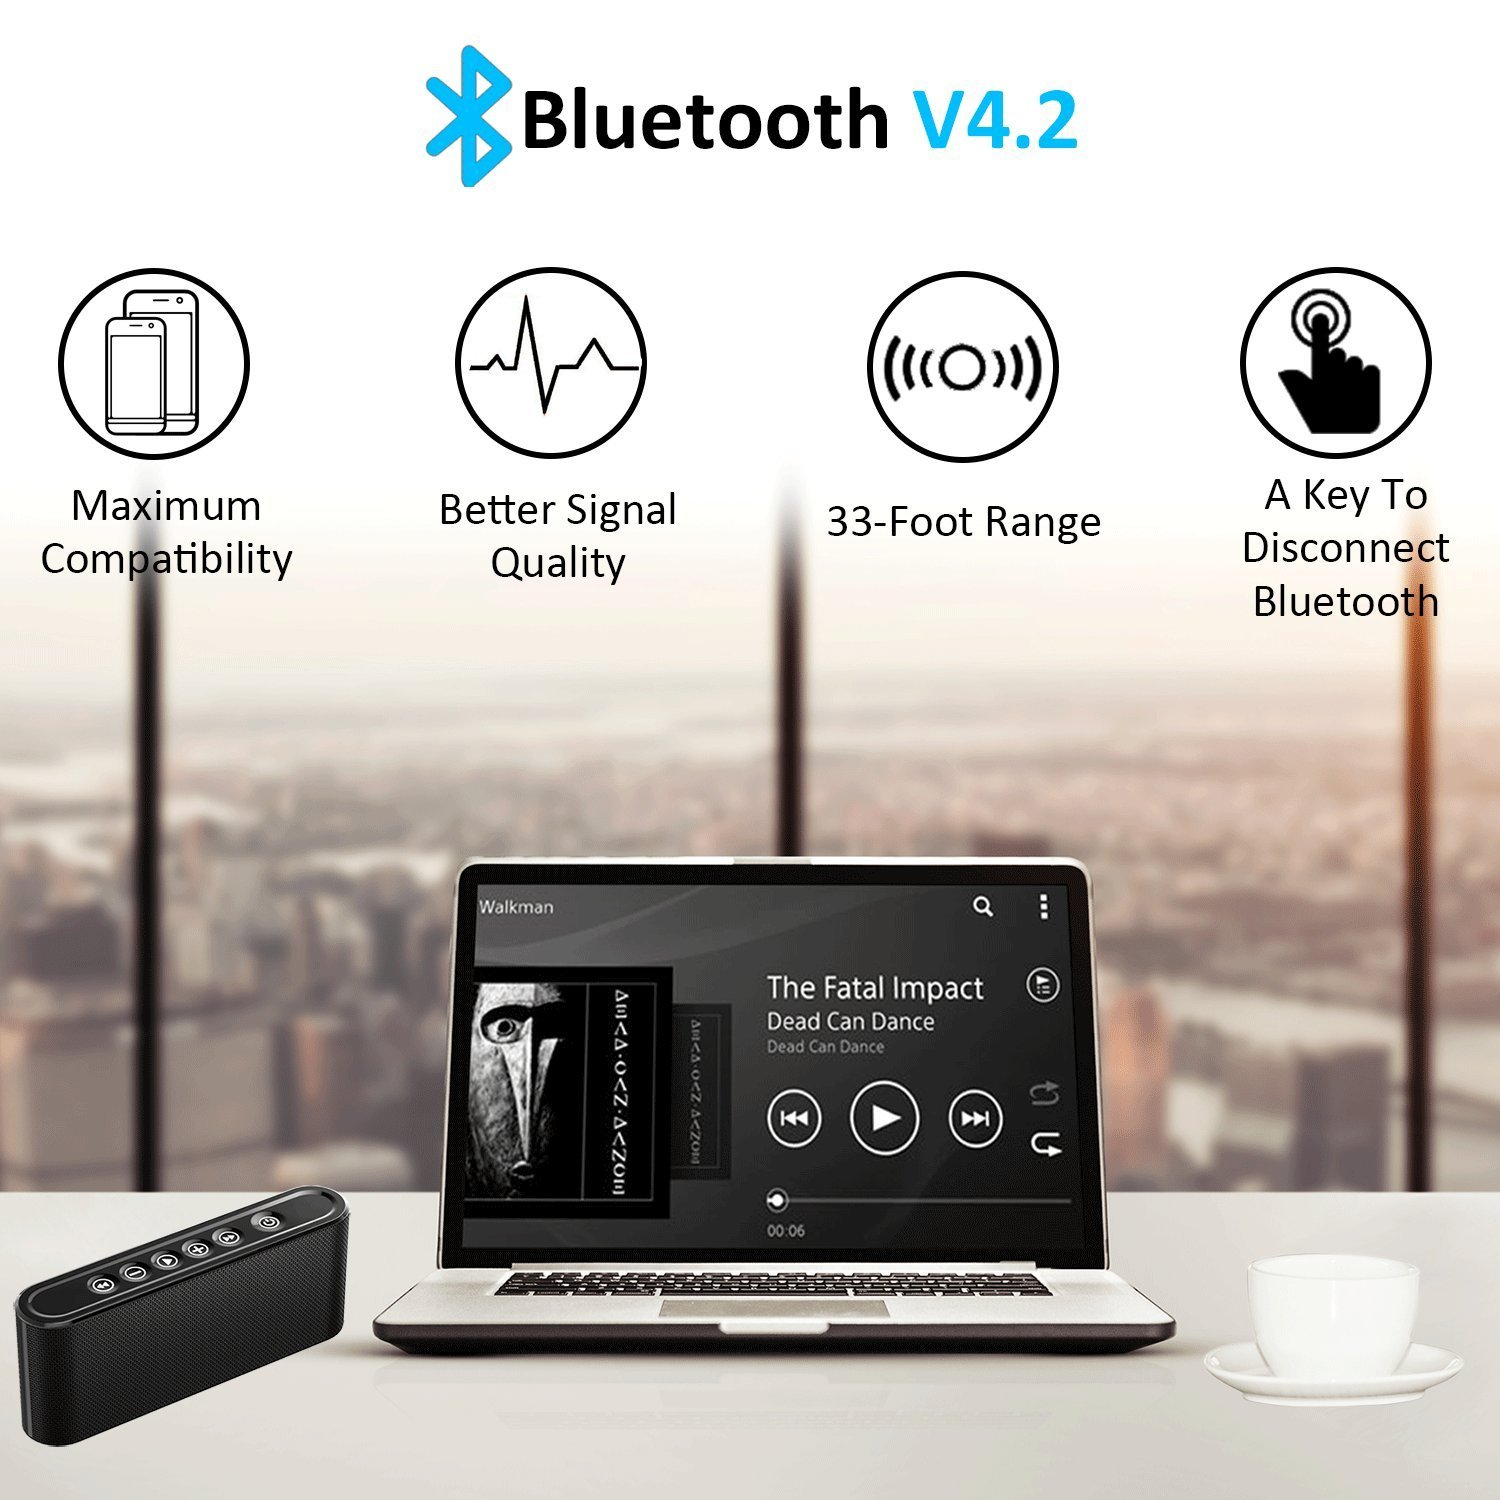 Bluetooth Speakers, 6W Touch Metal Speakers, Mini Portable Bluetooth 4.2 Wireless with Super Bass, Treble Stereo Subwoofer, Support TF Card, USB Disk, 3.5mm AUX Input,Mobile Computer Accessories by WORENMI (Image #5)